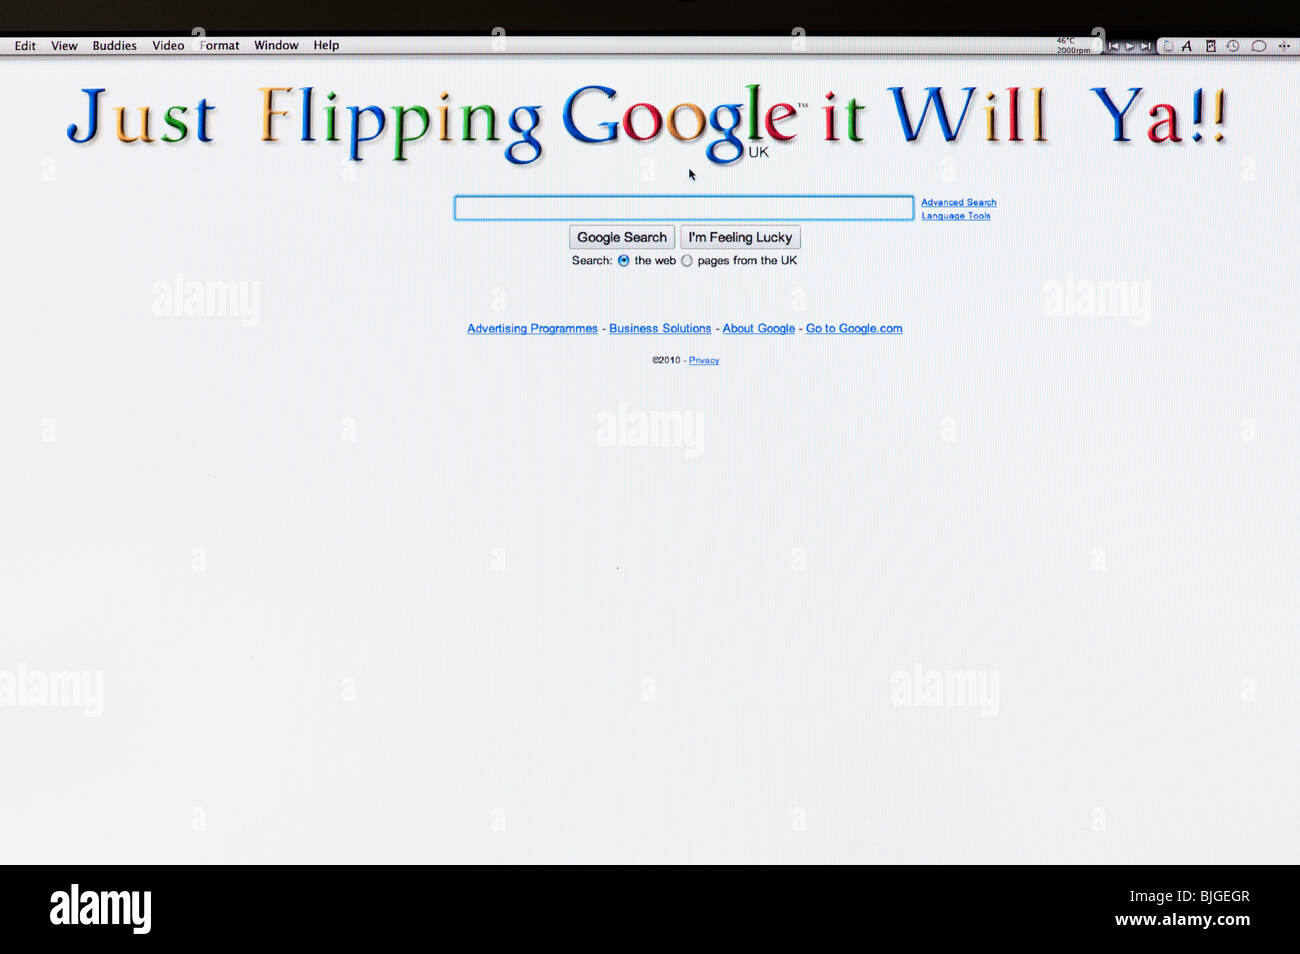 Just flipping google it will ya. Google digitally altered home page - Stock Image